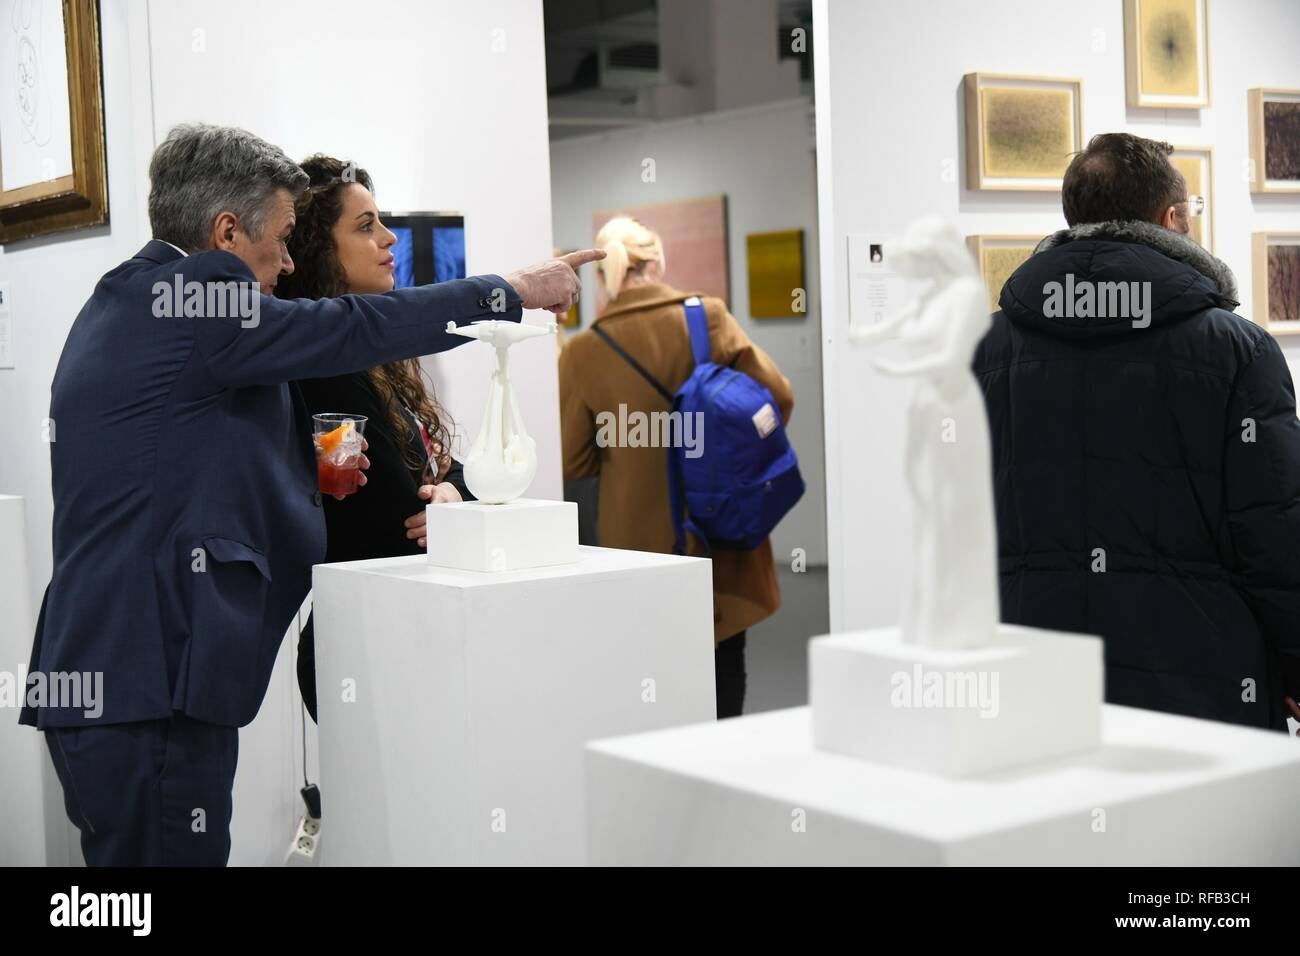 Milan, 24 January 2019 - Back Affordable Art Fair, the contemporary art fair that over the years has conquered the heart of the Milanese, bringing in their homes beauty, creativity and emotions contained in the works, for sale up to 6,000 euros. Lose yourself in art is the slogan and fil rouge of the 2019 edition, scheduled for Superstudio Più from 25 to 27 January (inauguration on 24th evening by invitation or online presale), with the participation of 85 galleries from all over the world. So many new features in the labyrinthine space of Affordable Art Fair, because to find yourself sometim Stock Photo